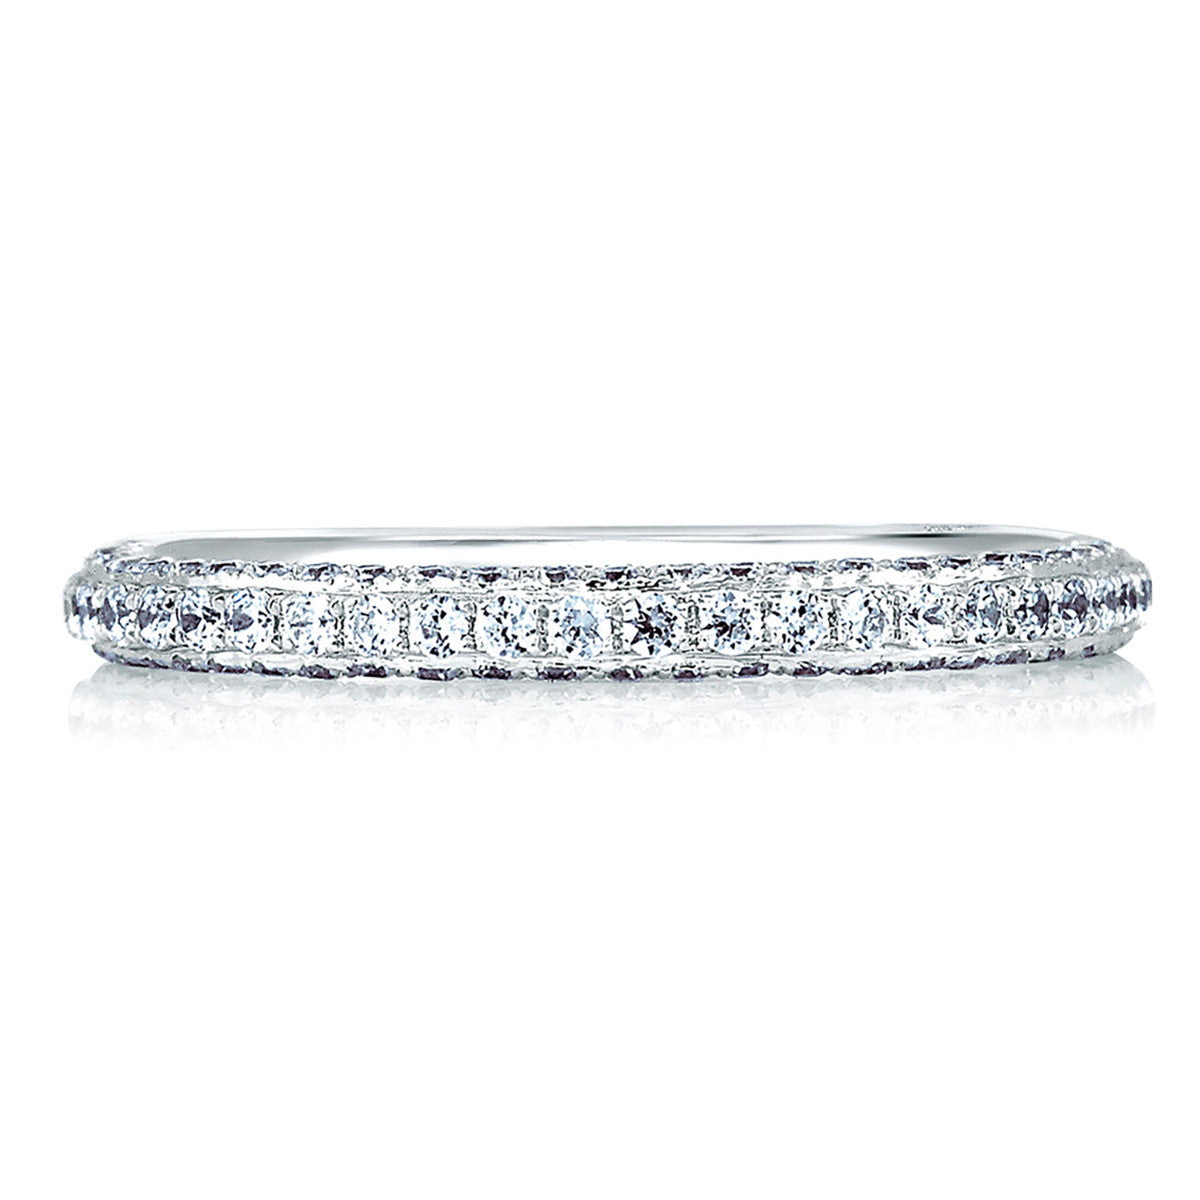 A. Jaffe Signature Pave with Diamond Encrusted Profile Band MRS379/46